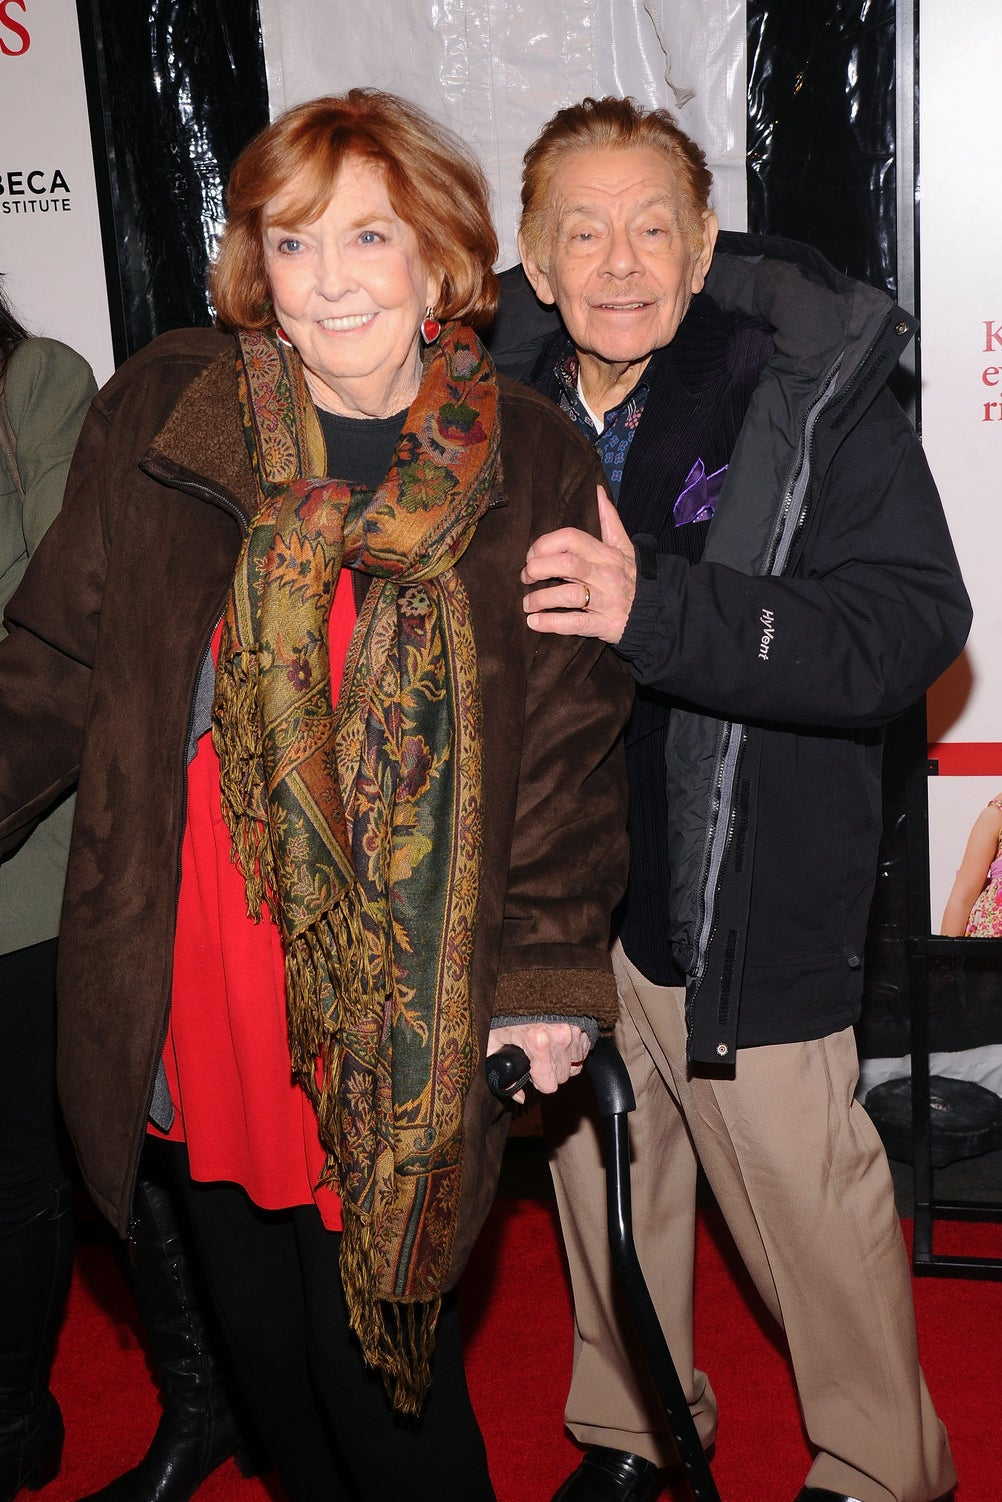 The couple in 2010.